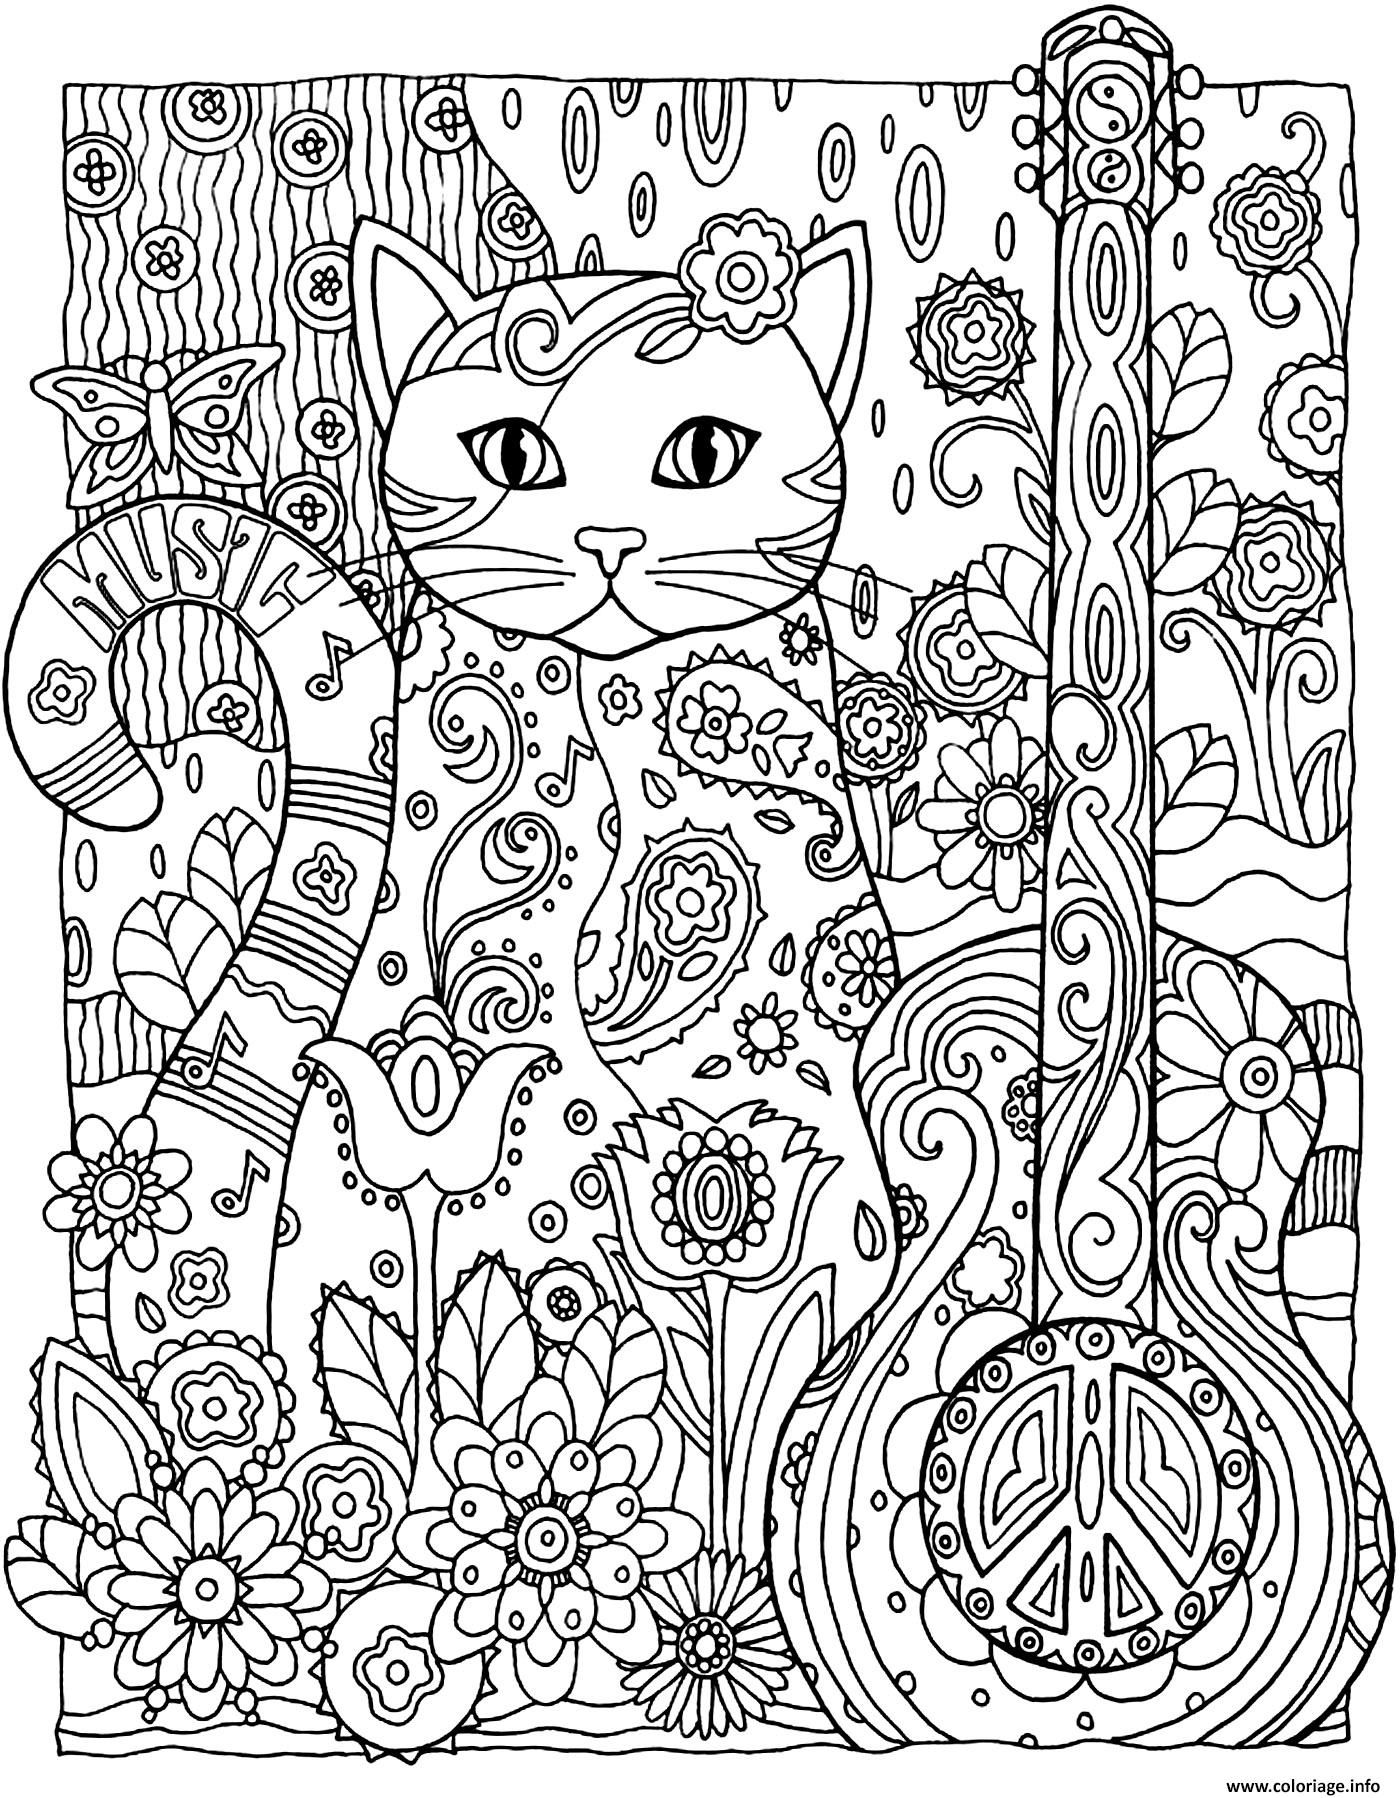 Coloriage Adulte Animaux Chat Guitare Jecolorie Com